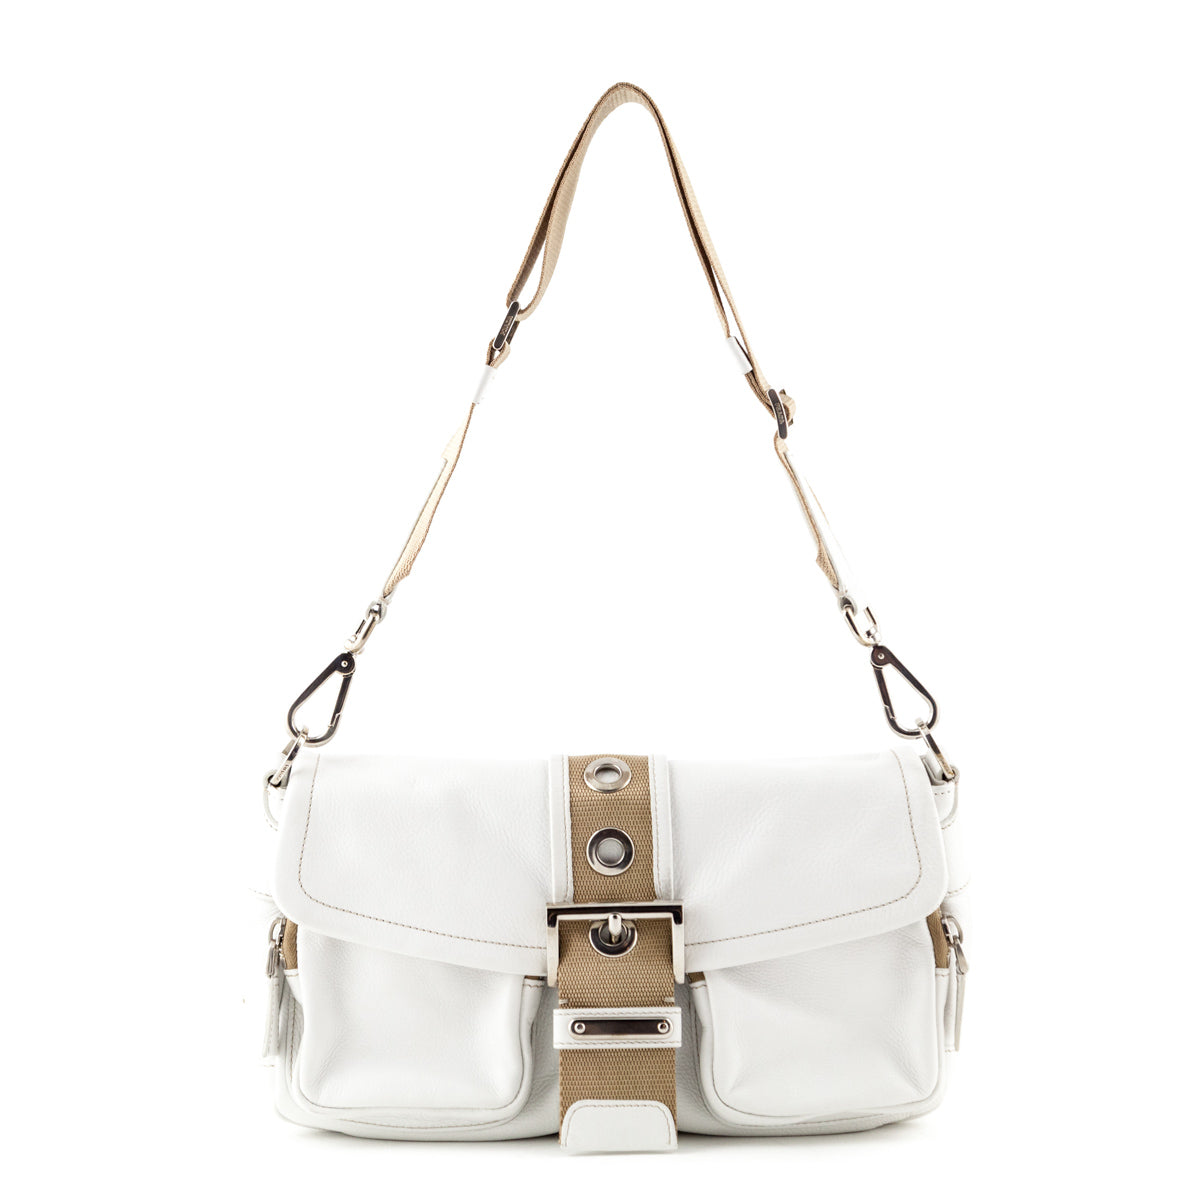 7f3eea78ed Prada White Leather Shoulder Bag - LOVE that BAG - Preowned Authentic  Designer Handbags ...